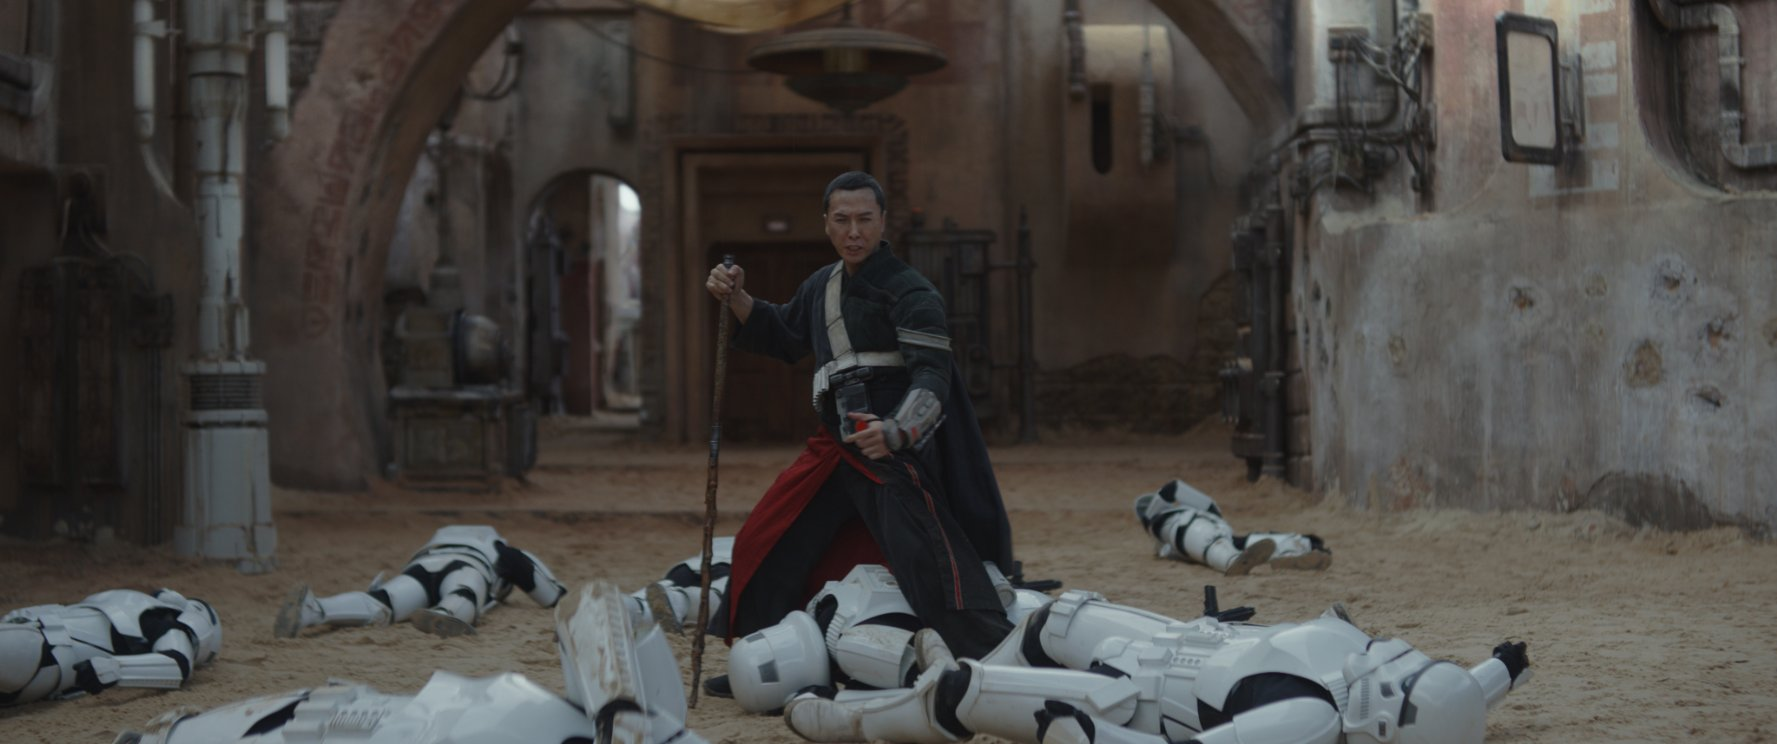 Donnie Yen as Chirrut Imwe. There are memorable characters here and they're played well, but they could all use more screen time.